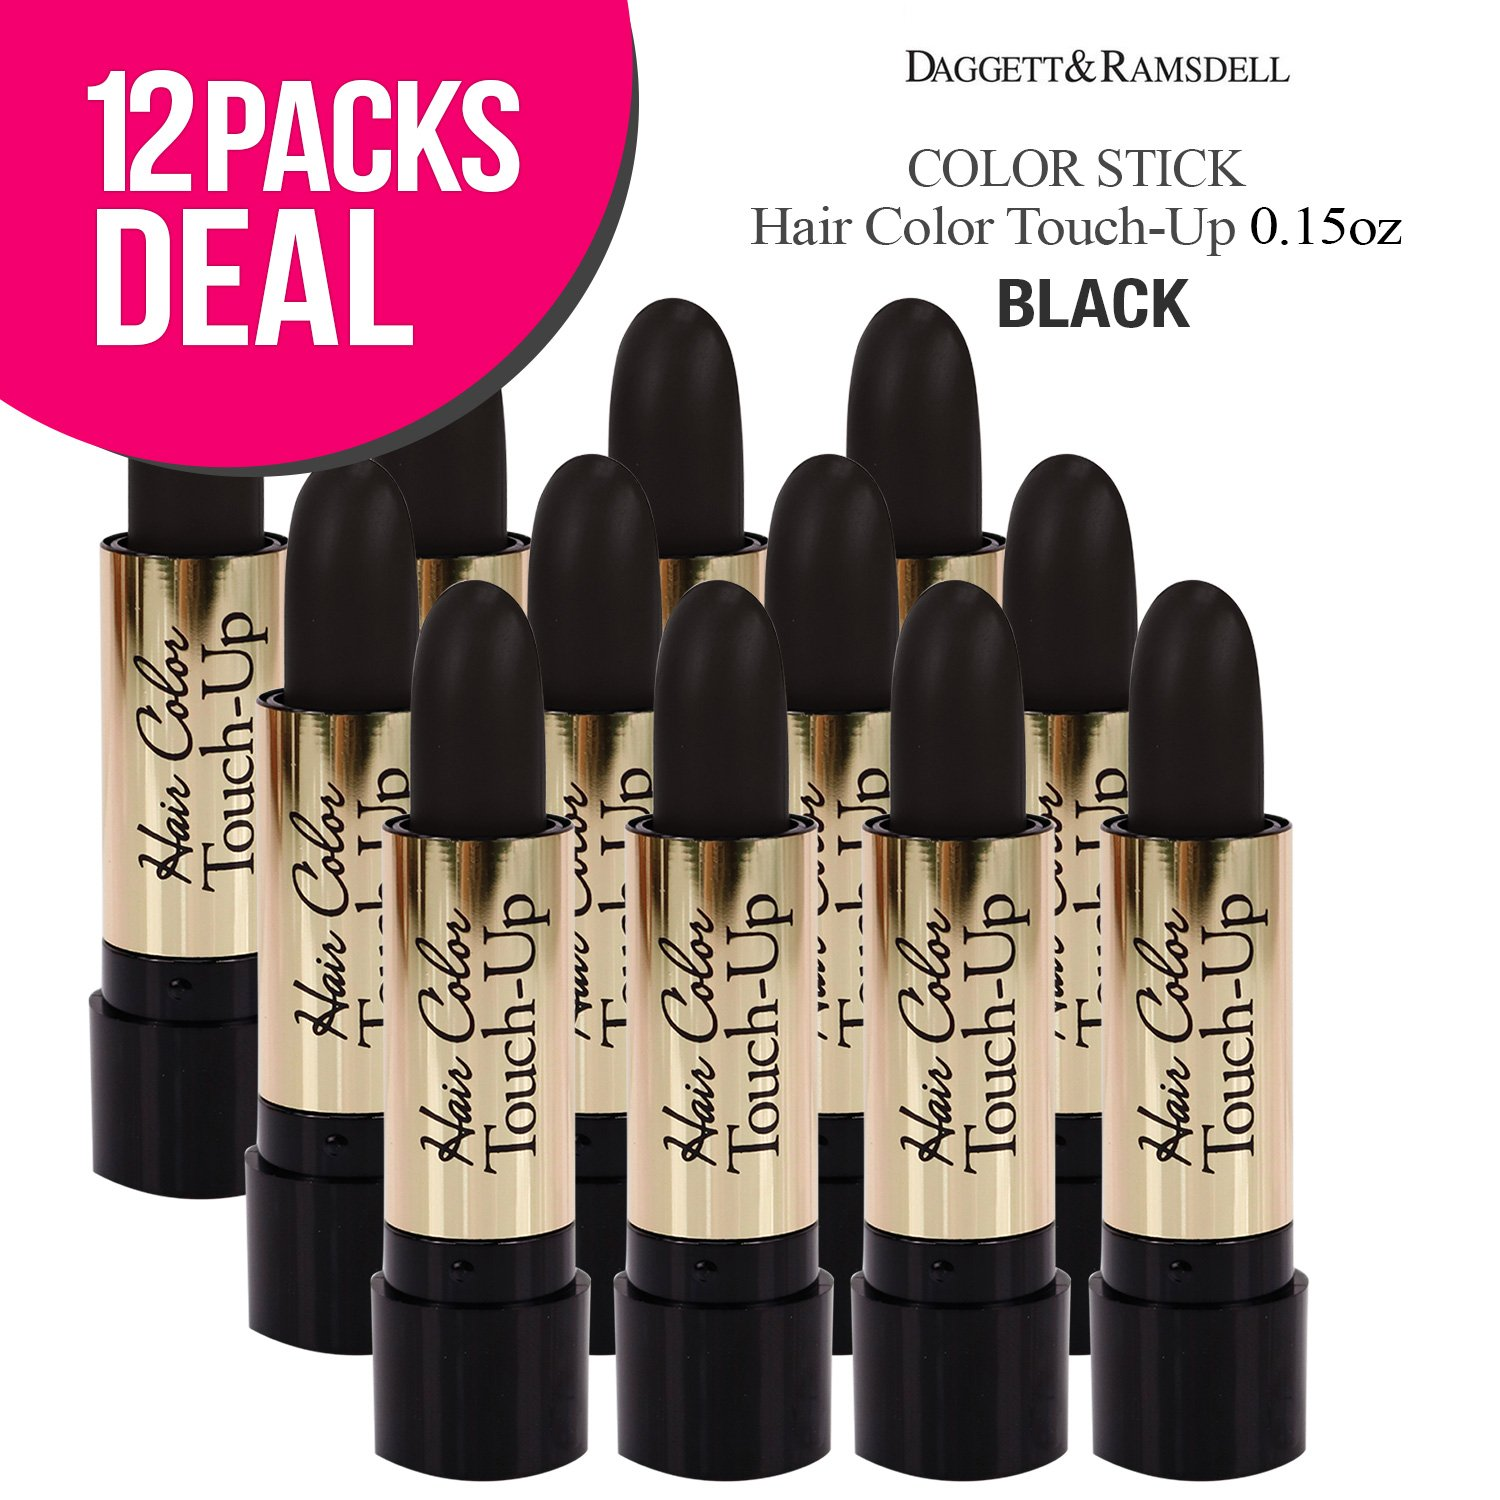 (12 PACK) Root Color Cover Stick Hair Color Touch-Up 0.15oz (BLACK)